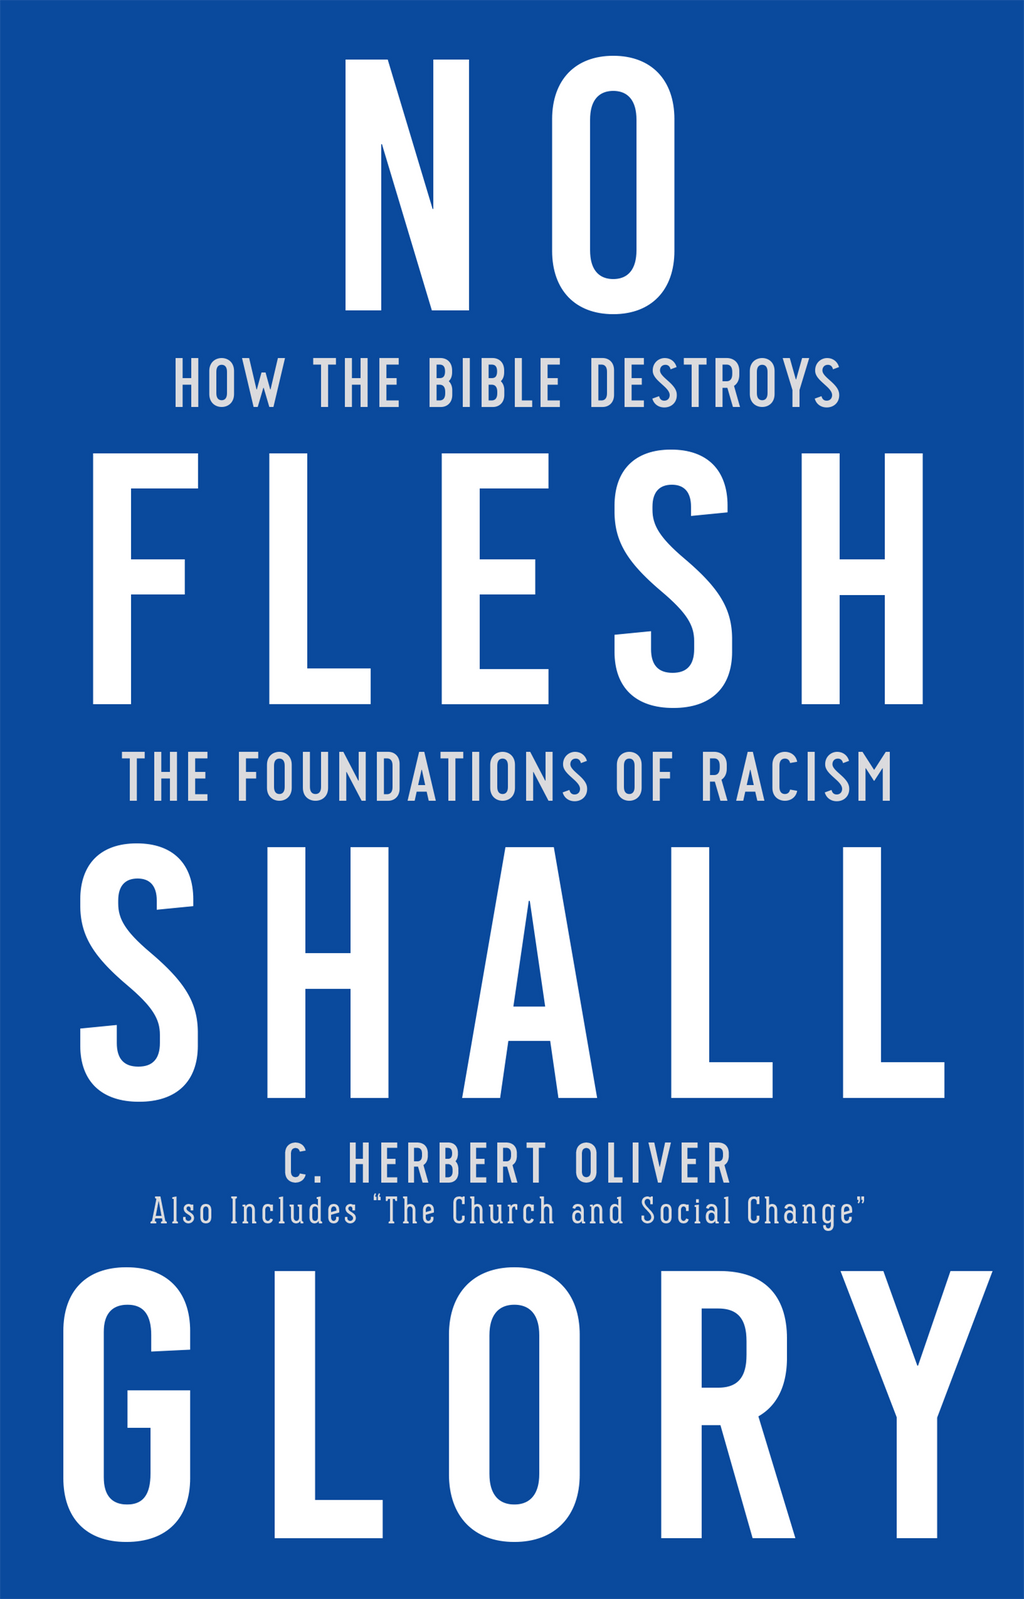 No Flesh Shall Glory: How the Bible Destroys the Foundations of Racism - Oliver, C Herbert - 9781629959016